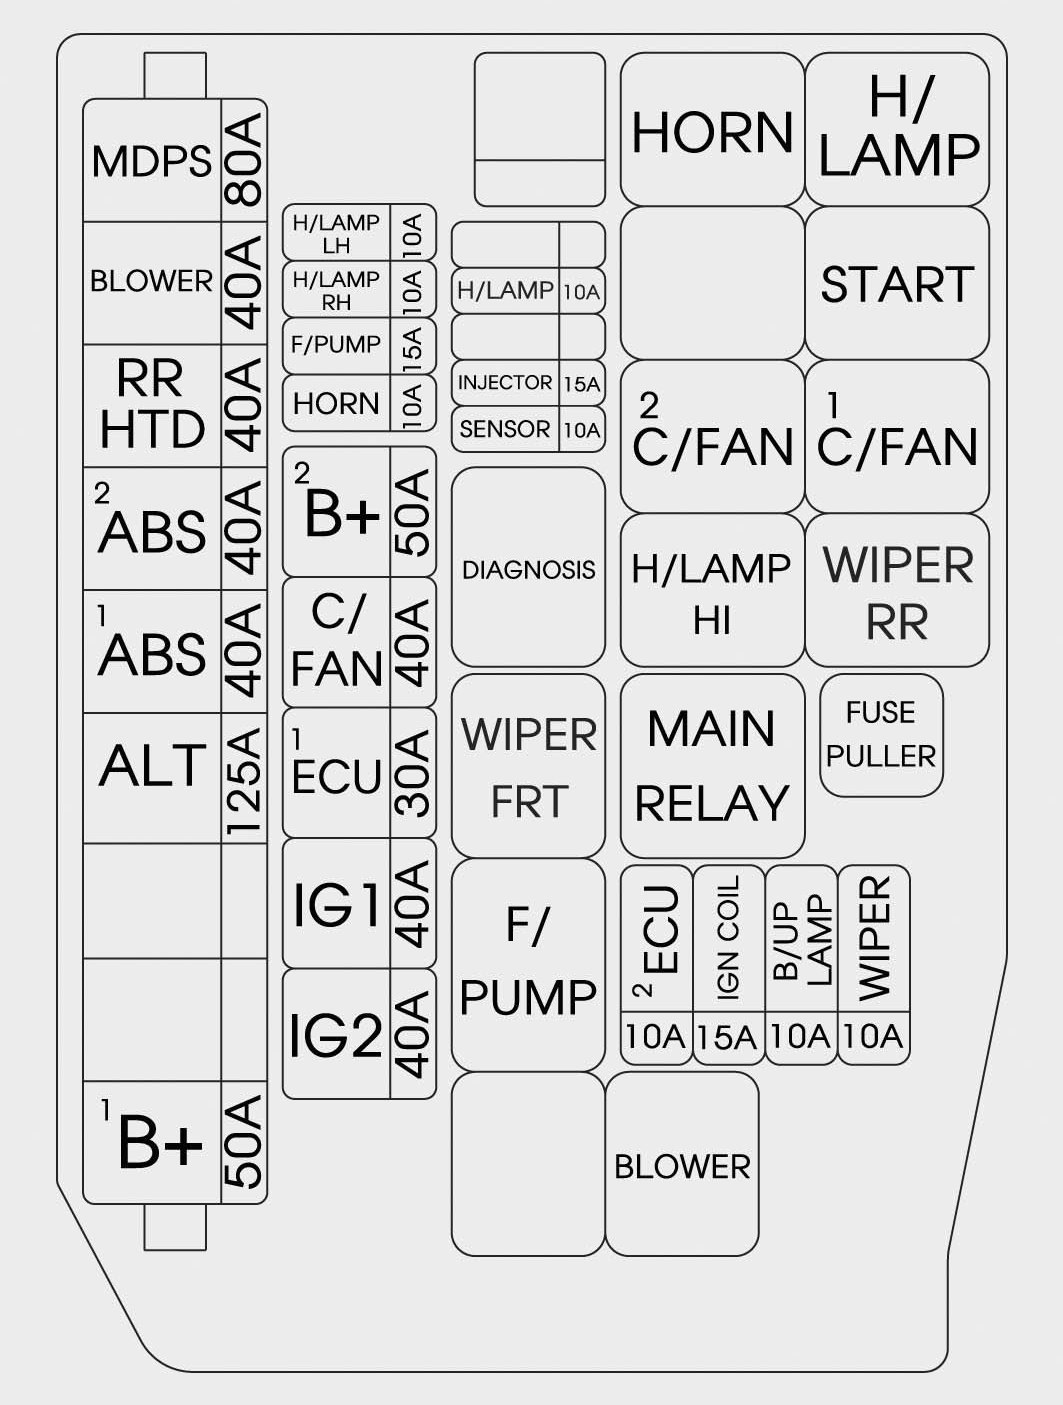 Fuse Box 1999 Hyundai Sonata Auto Electrical Wiring Diagram 2001 Mazda 626 2016 28 Images